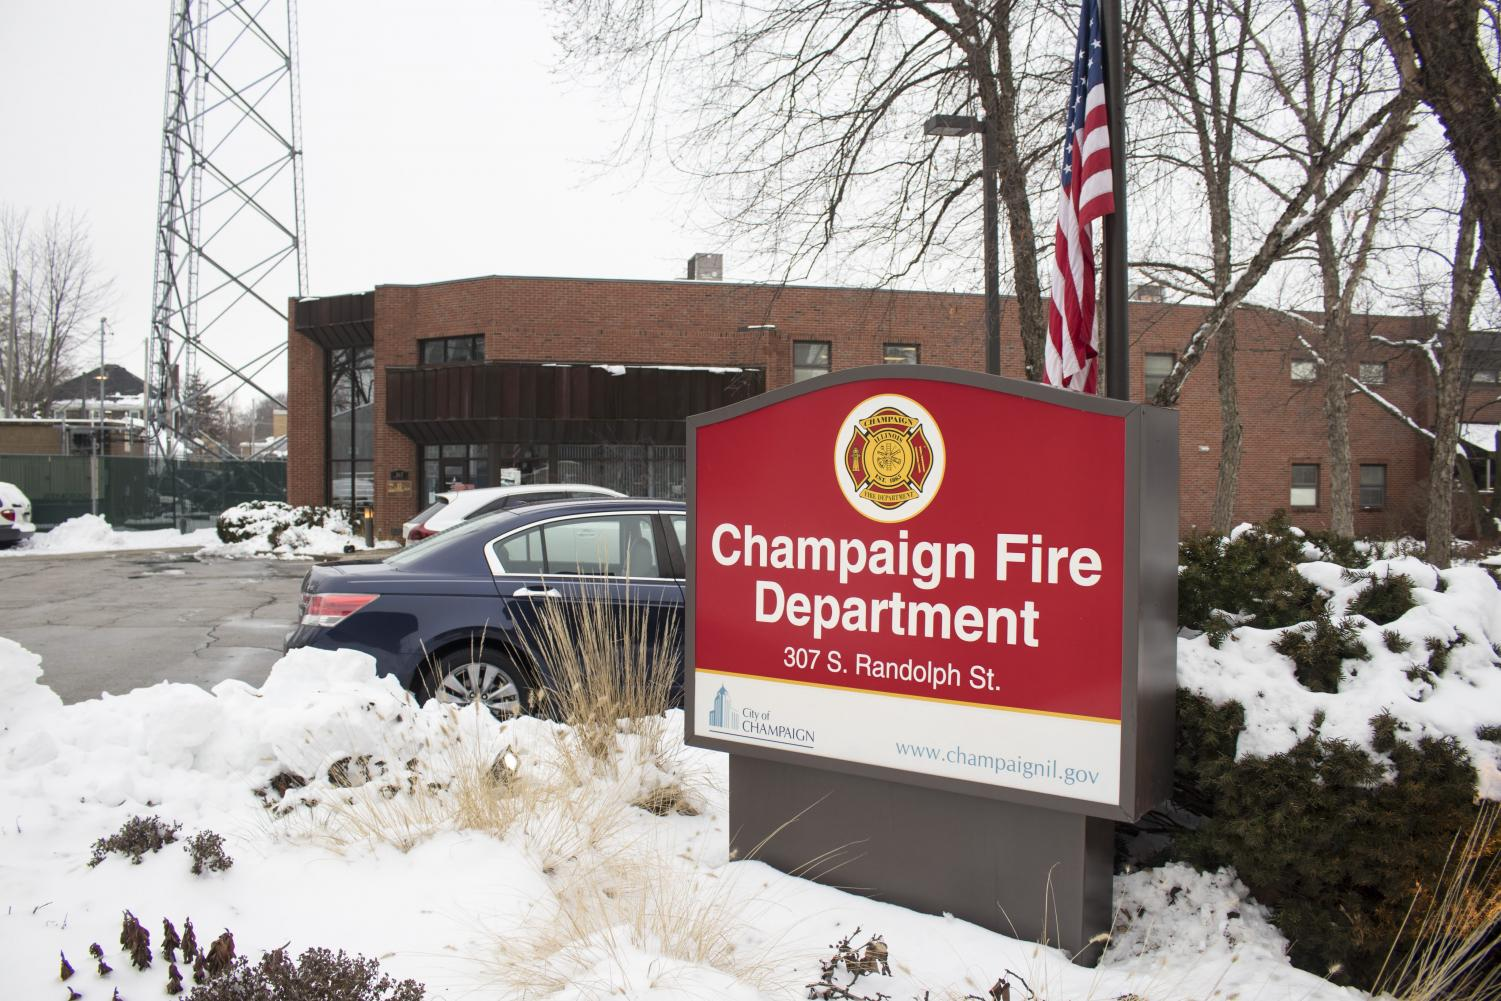 The Champaign Fire Department, located at 307 S. Randolph St.